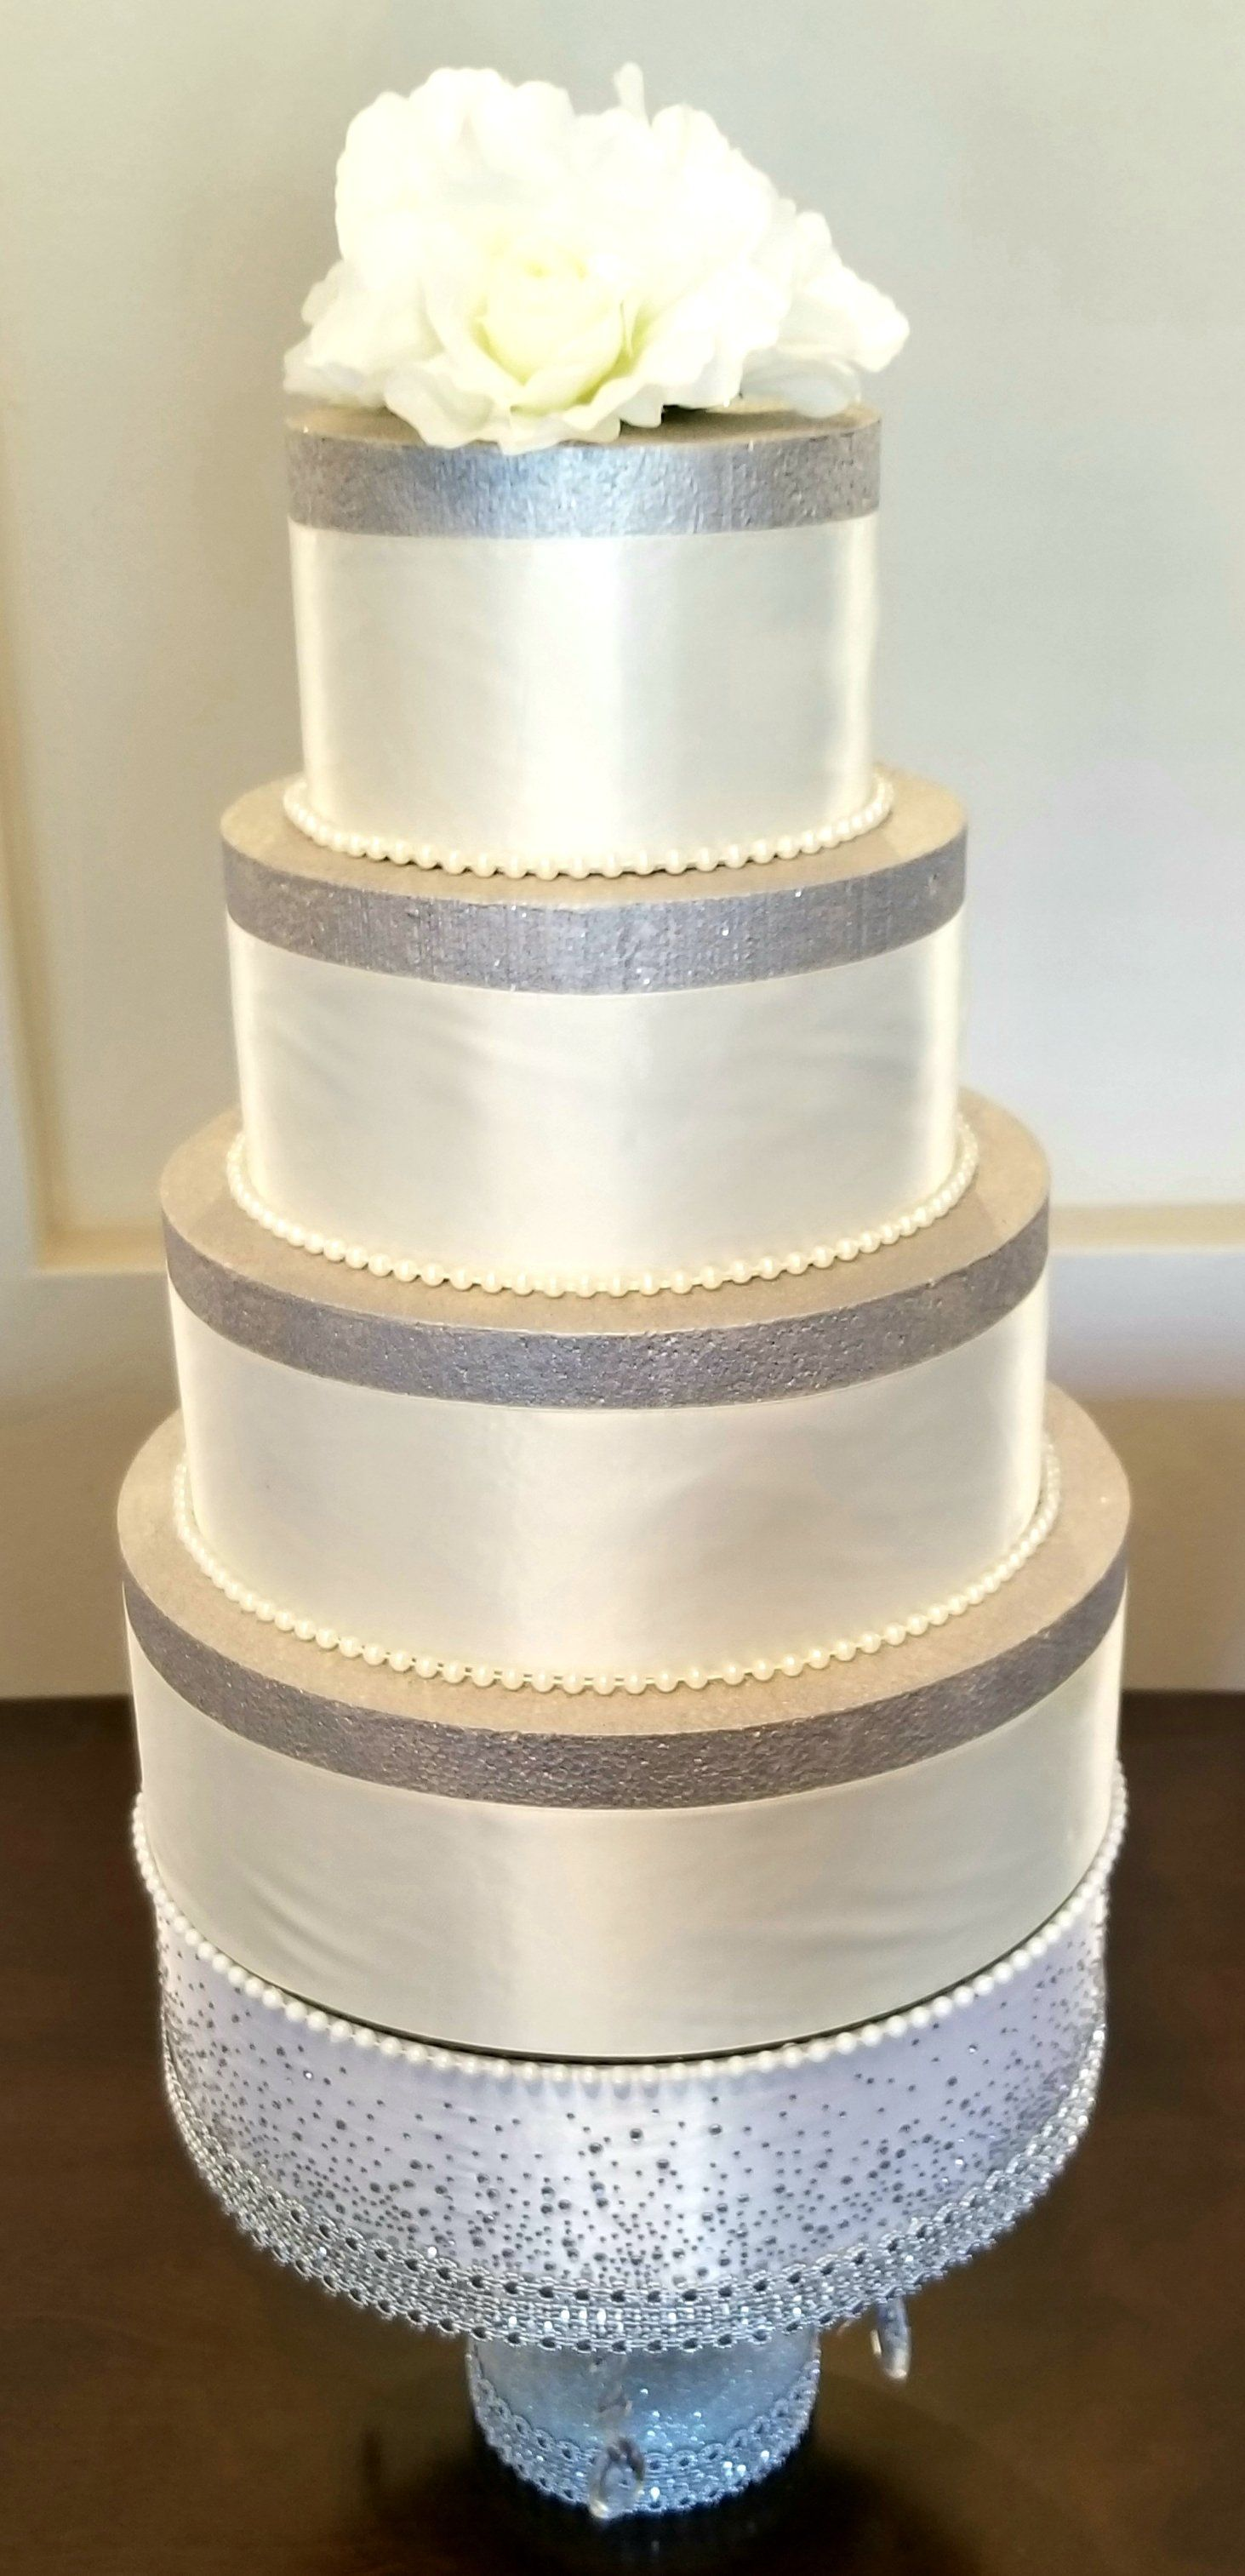 Satin Bling Wrapped Diamonds Pearls 12 Inch Round And 6 Inches Tall Wedding Cake Stand Wedding Cake Stands Tall Wedding Cakes Beautiful Cake Stands